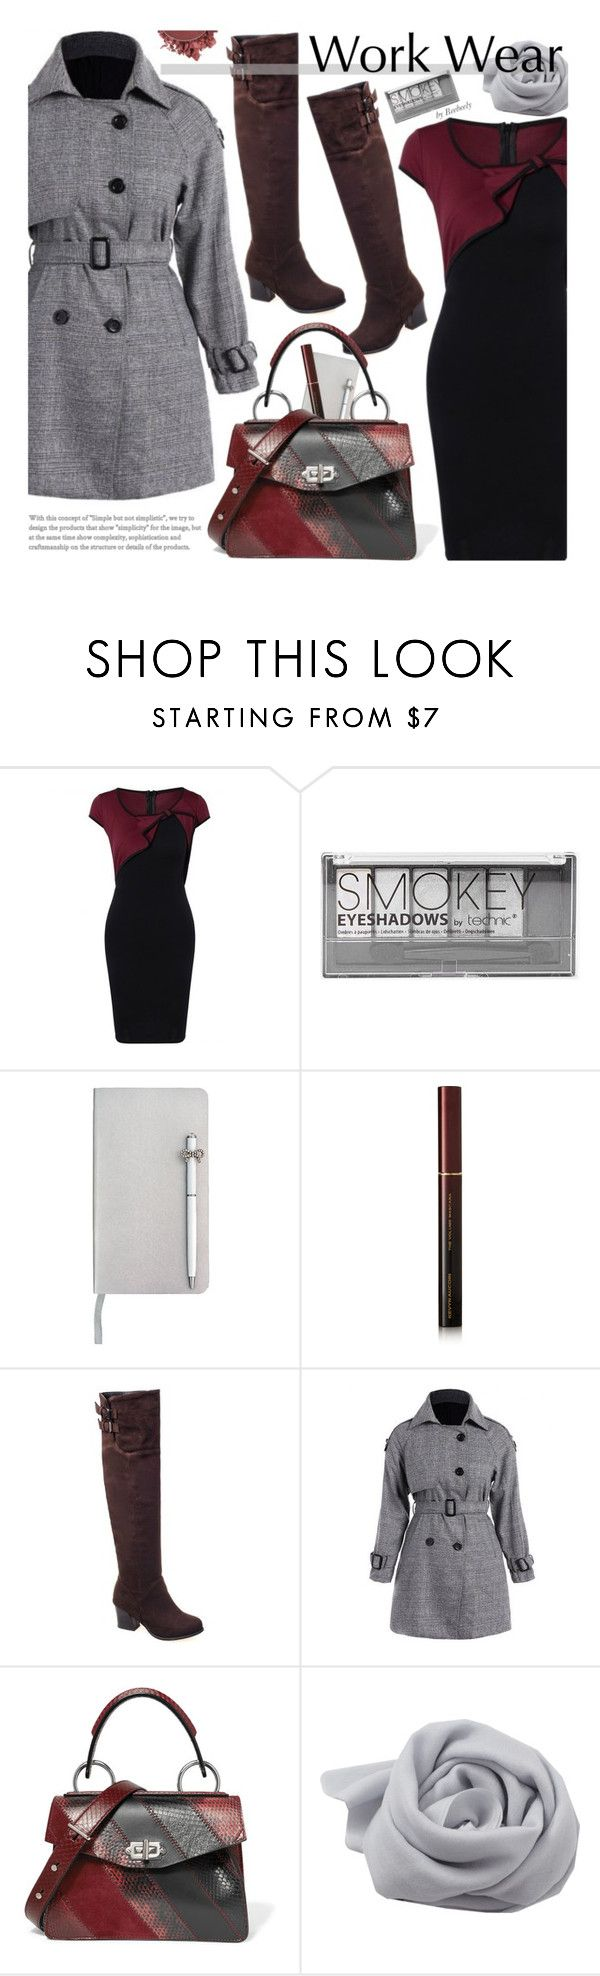 """""""Work Wear"""" by beebeely-look ❤ liked on Polyvore featuring Boohoo, ICE London, Kevyn Aucoin, Proenza Schouler, Bajra, Anastasia Beverly Hills, WorkWear, Boots, trenchcoat and twinkledeals"""